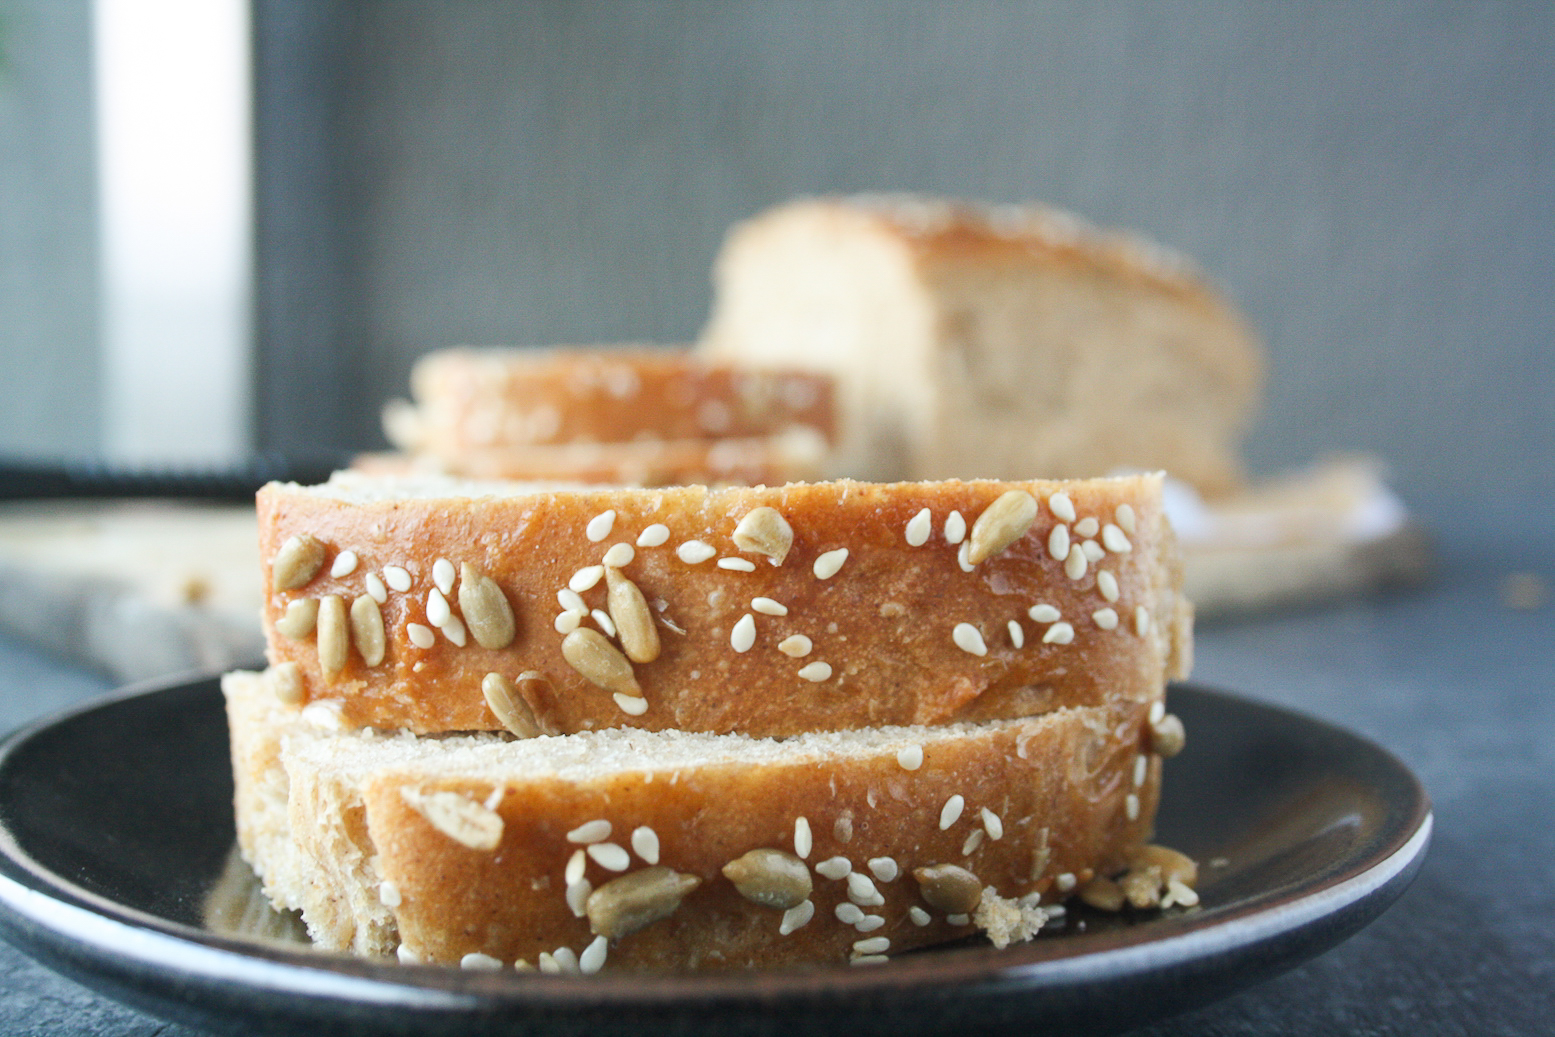 Soft and chewy homemade rye bread topped with sesame and sunflower seeds.